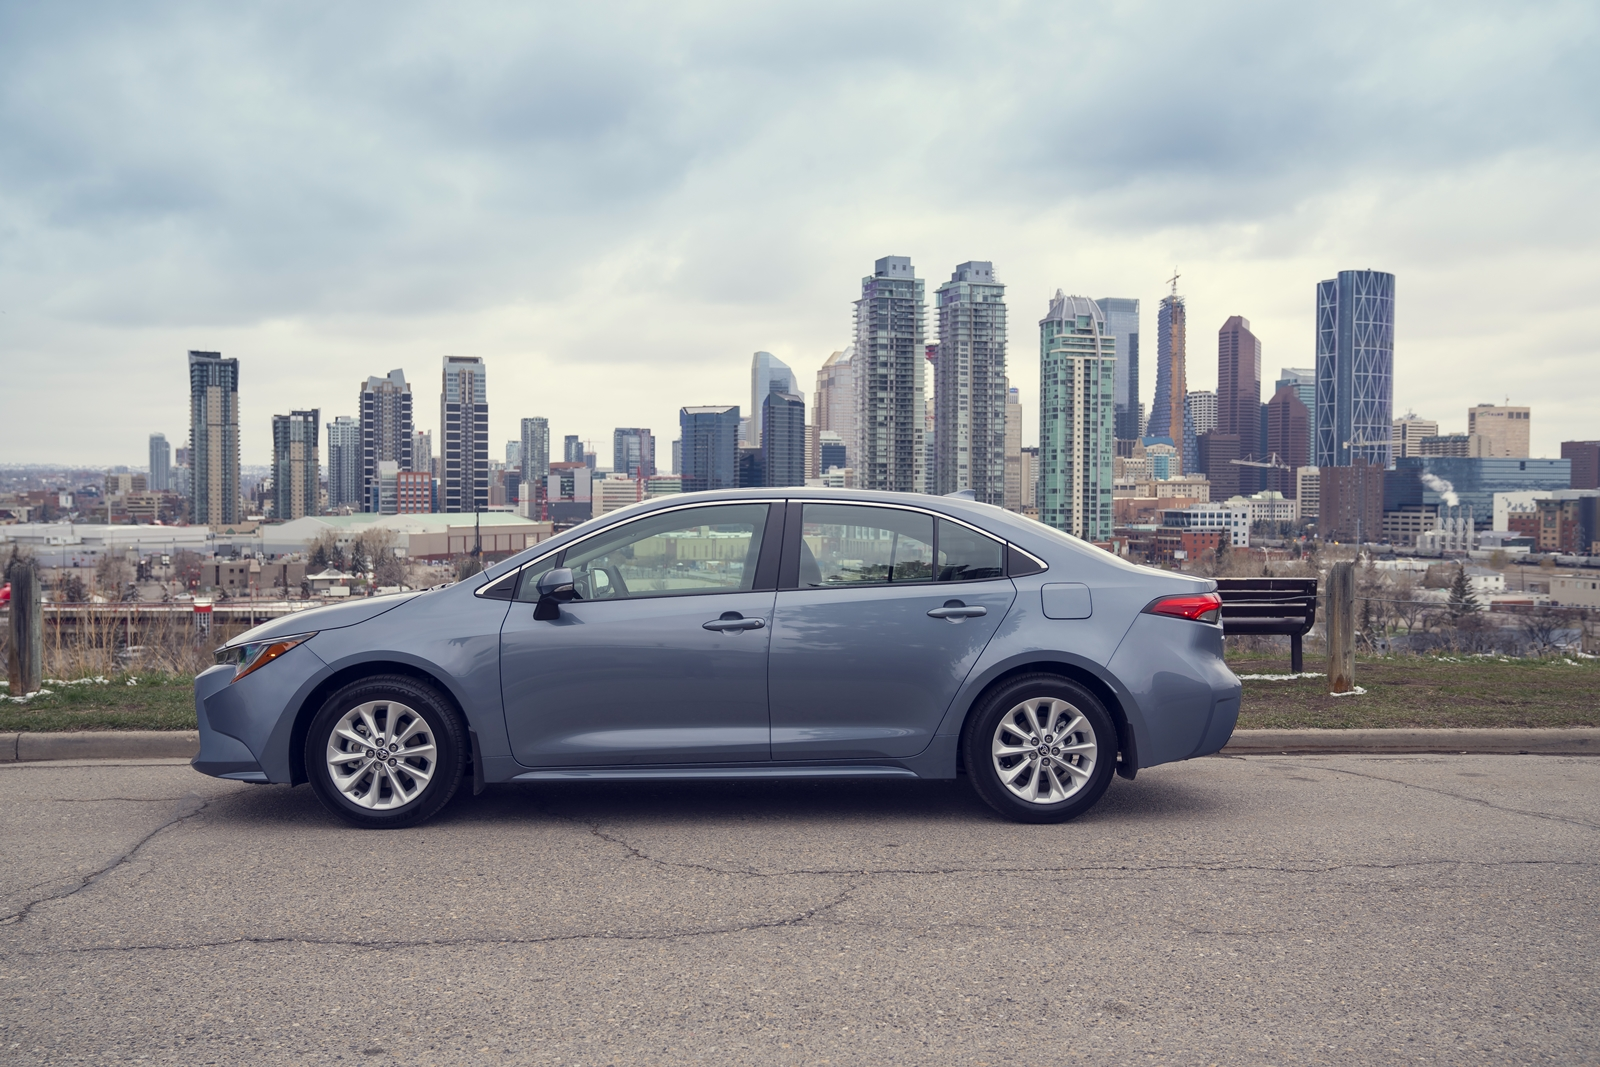 Best Mutual Funds Canada 2020 Is the 2020 Corolla's CVT transmission reliable?   MoneySense